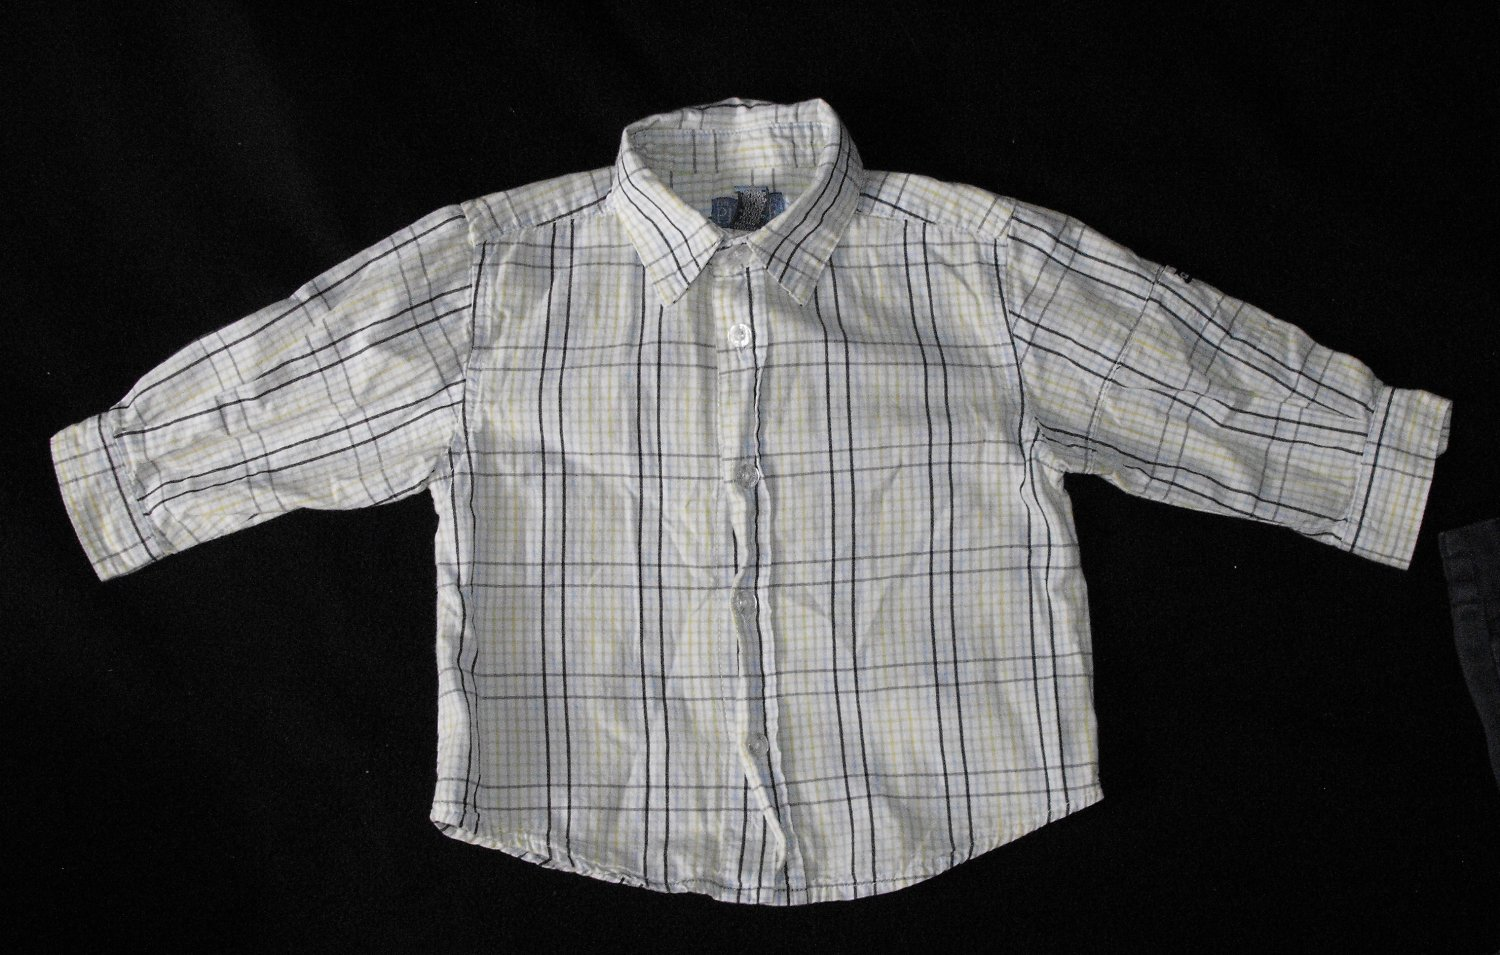 The Children's Place TCP Boys 12 Months Long Sleeve Button Up Shirt